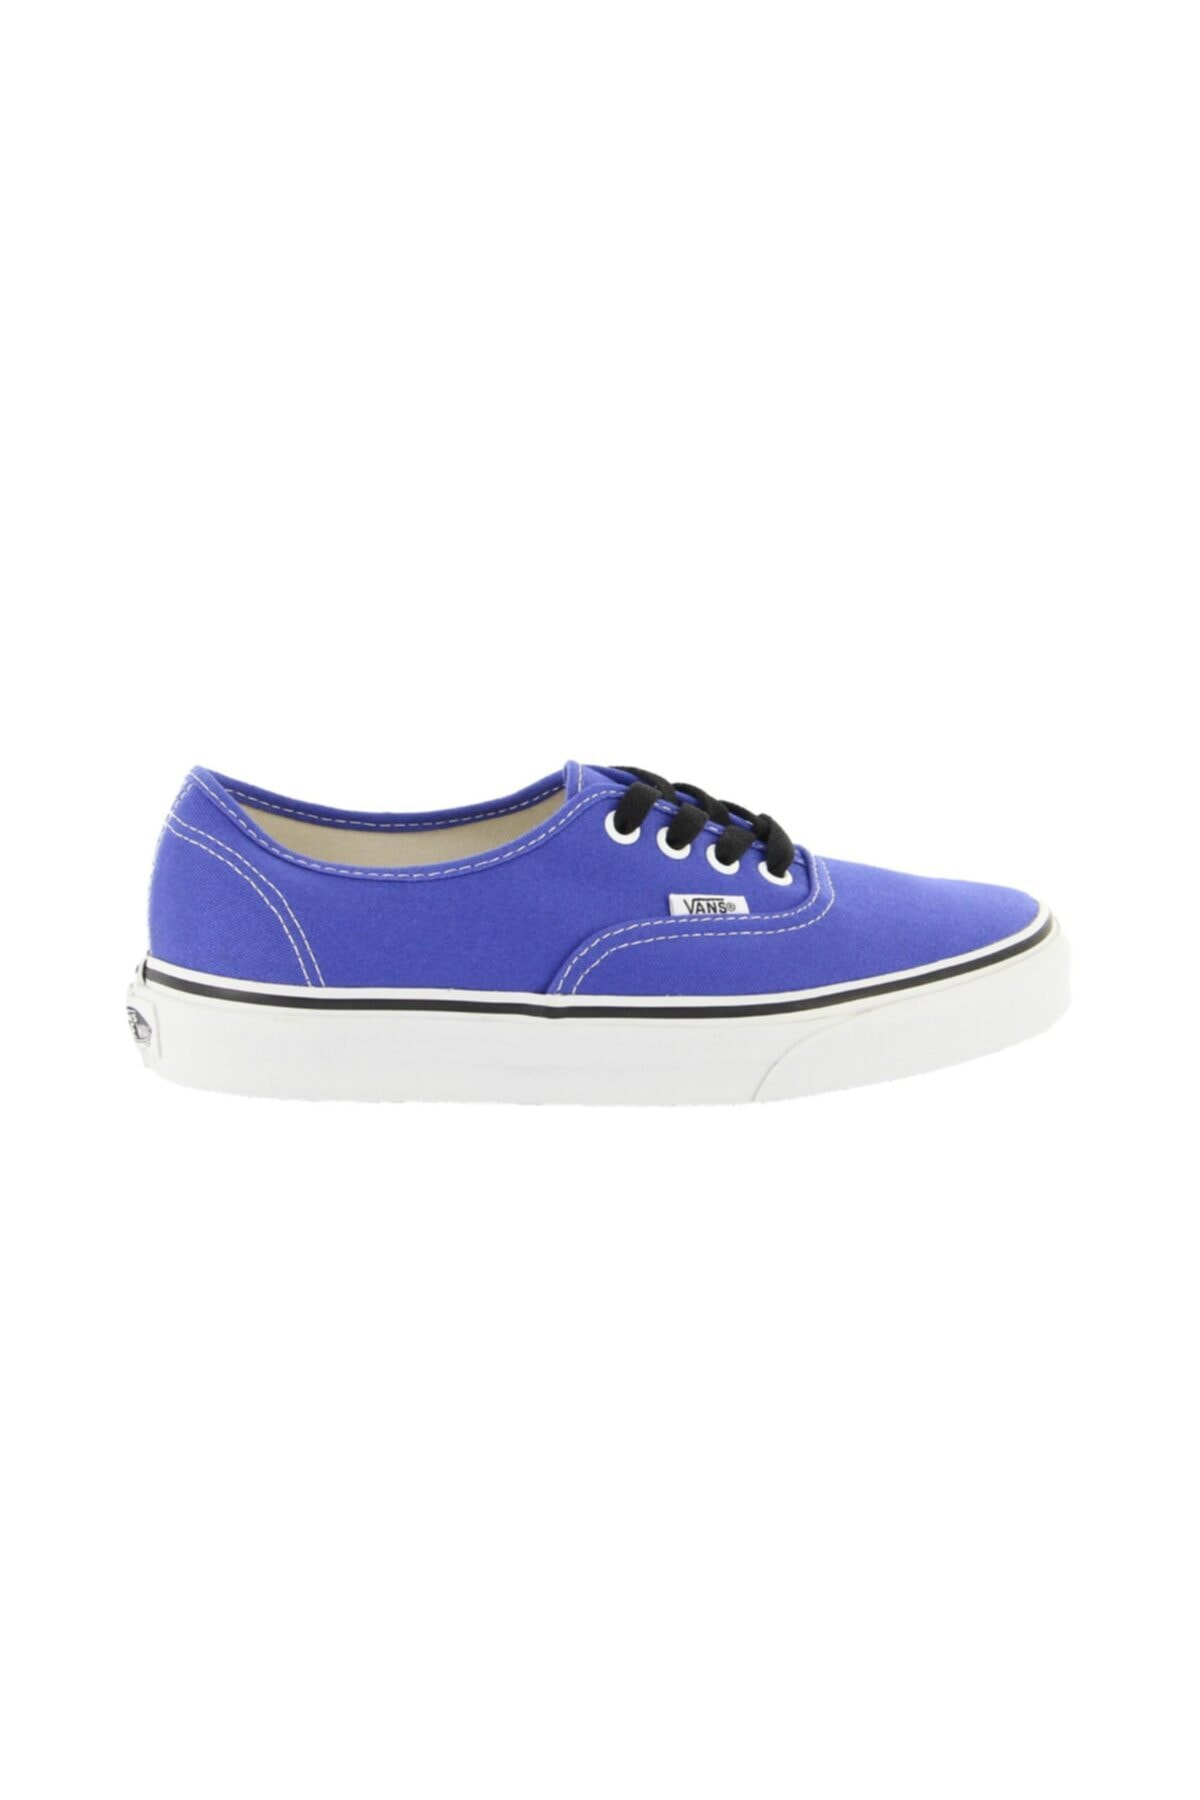 Vans Unisex Sneaker - Vtsv922 Authentic - VTSV922 1